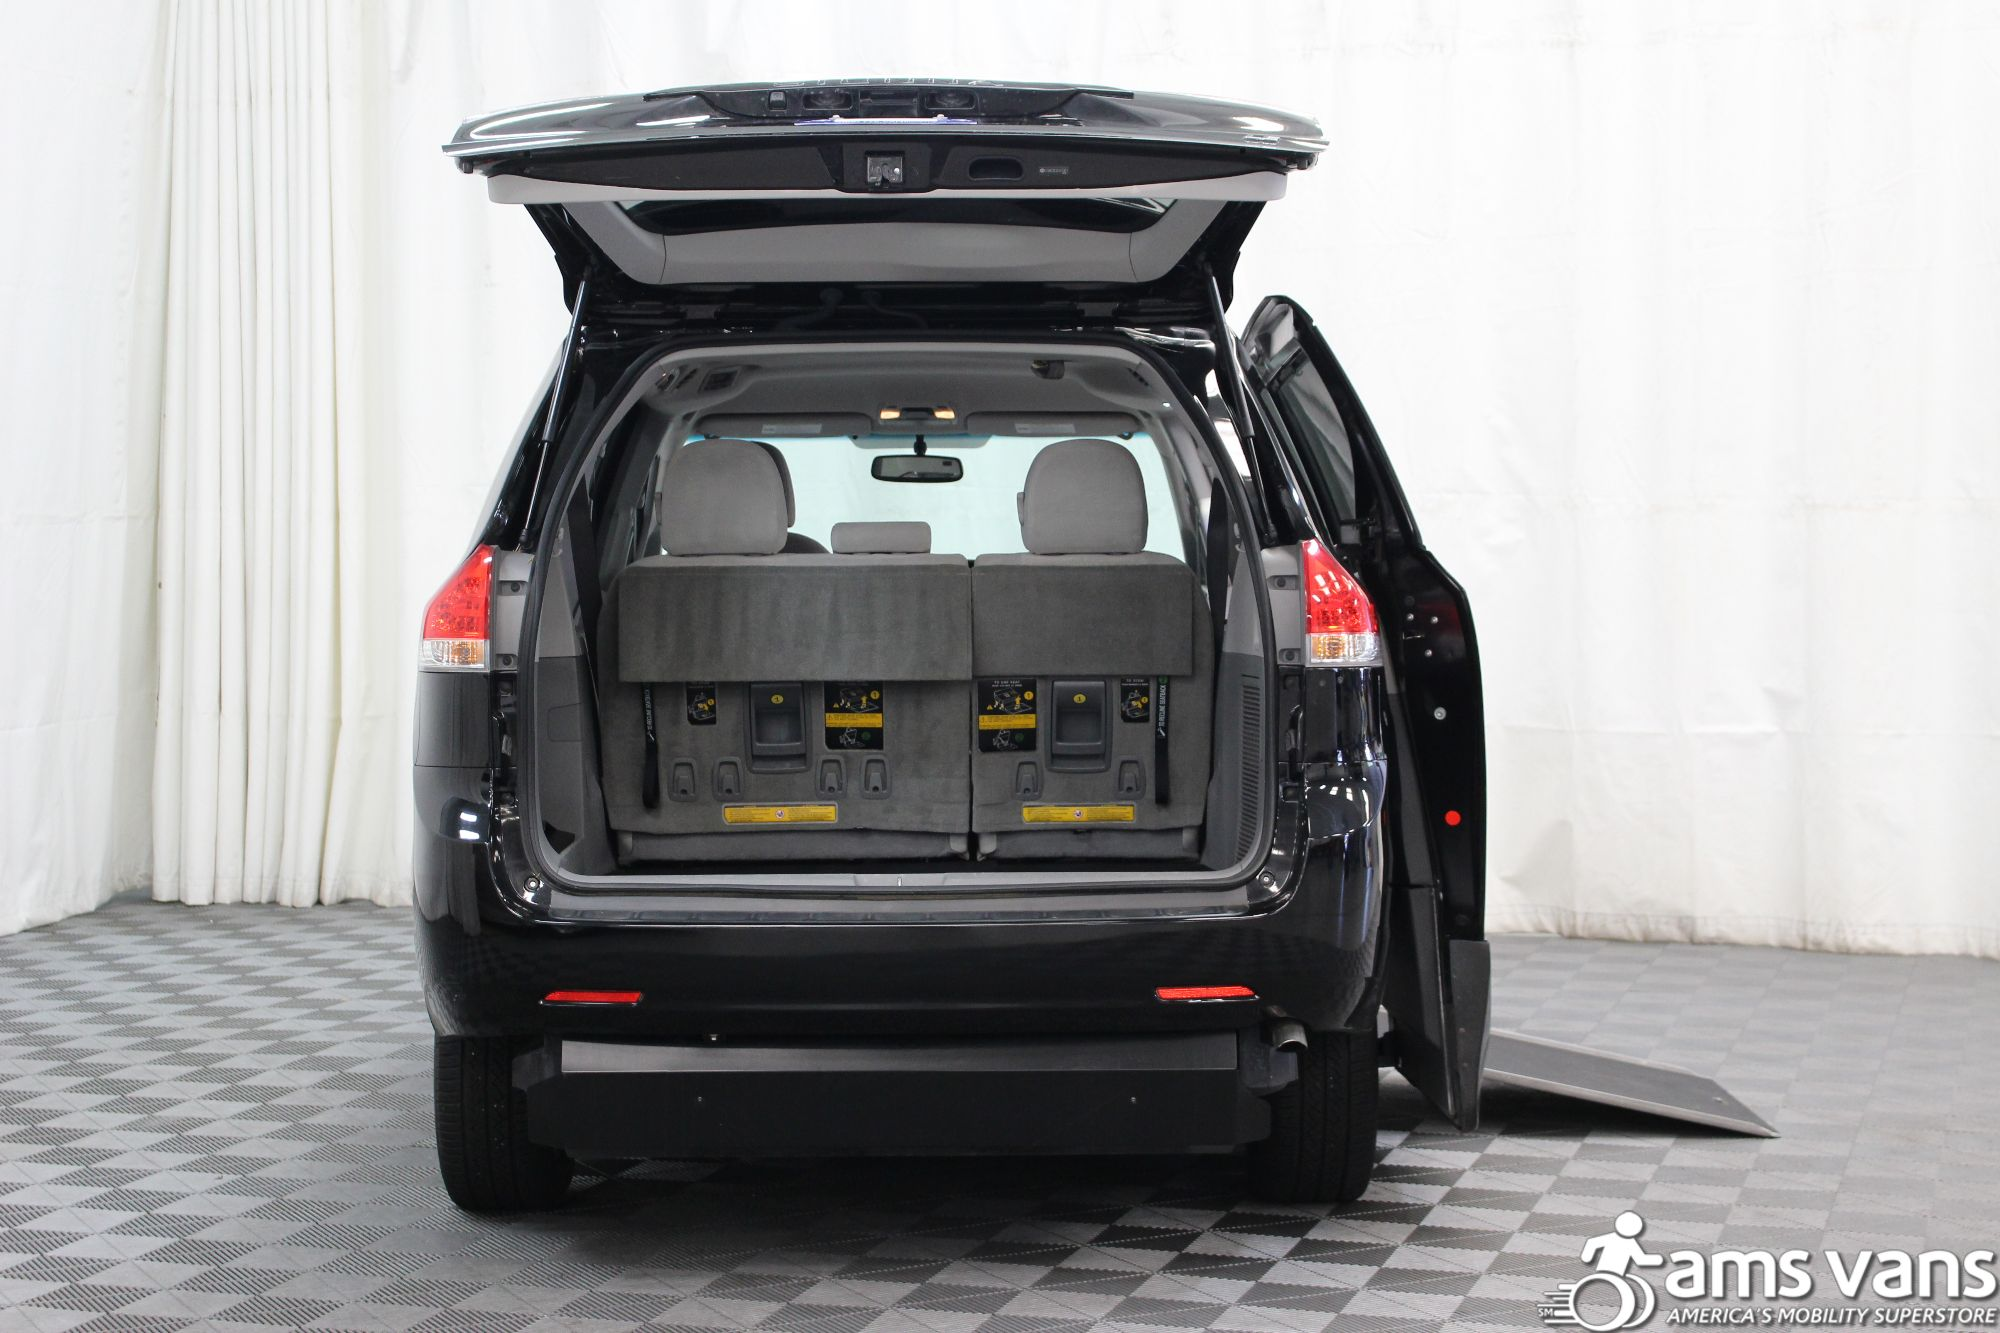 2014 toyota sienna wheelchair van for sale 37 999. Black Bedroom Furniture Sets. Home Design Ideas